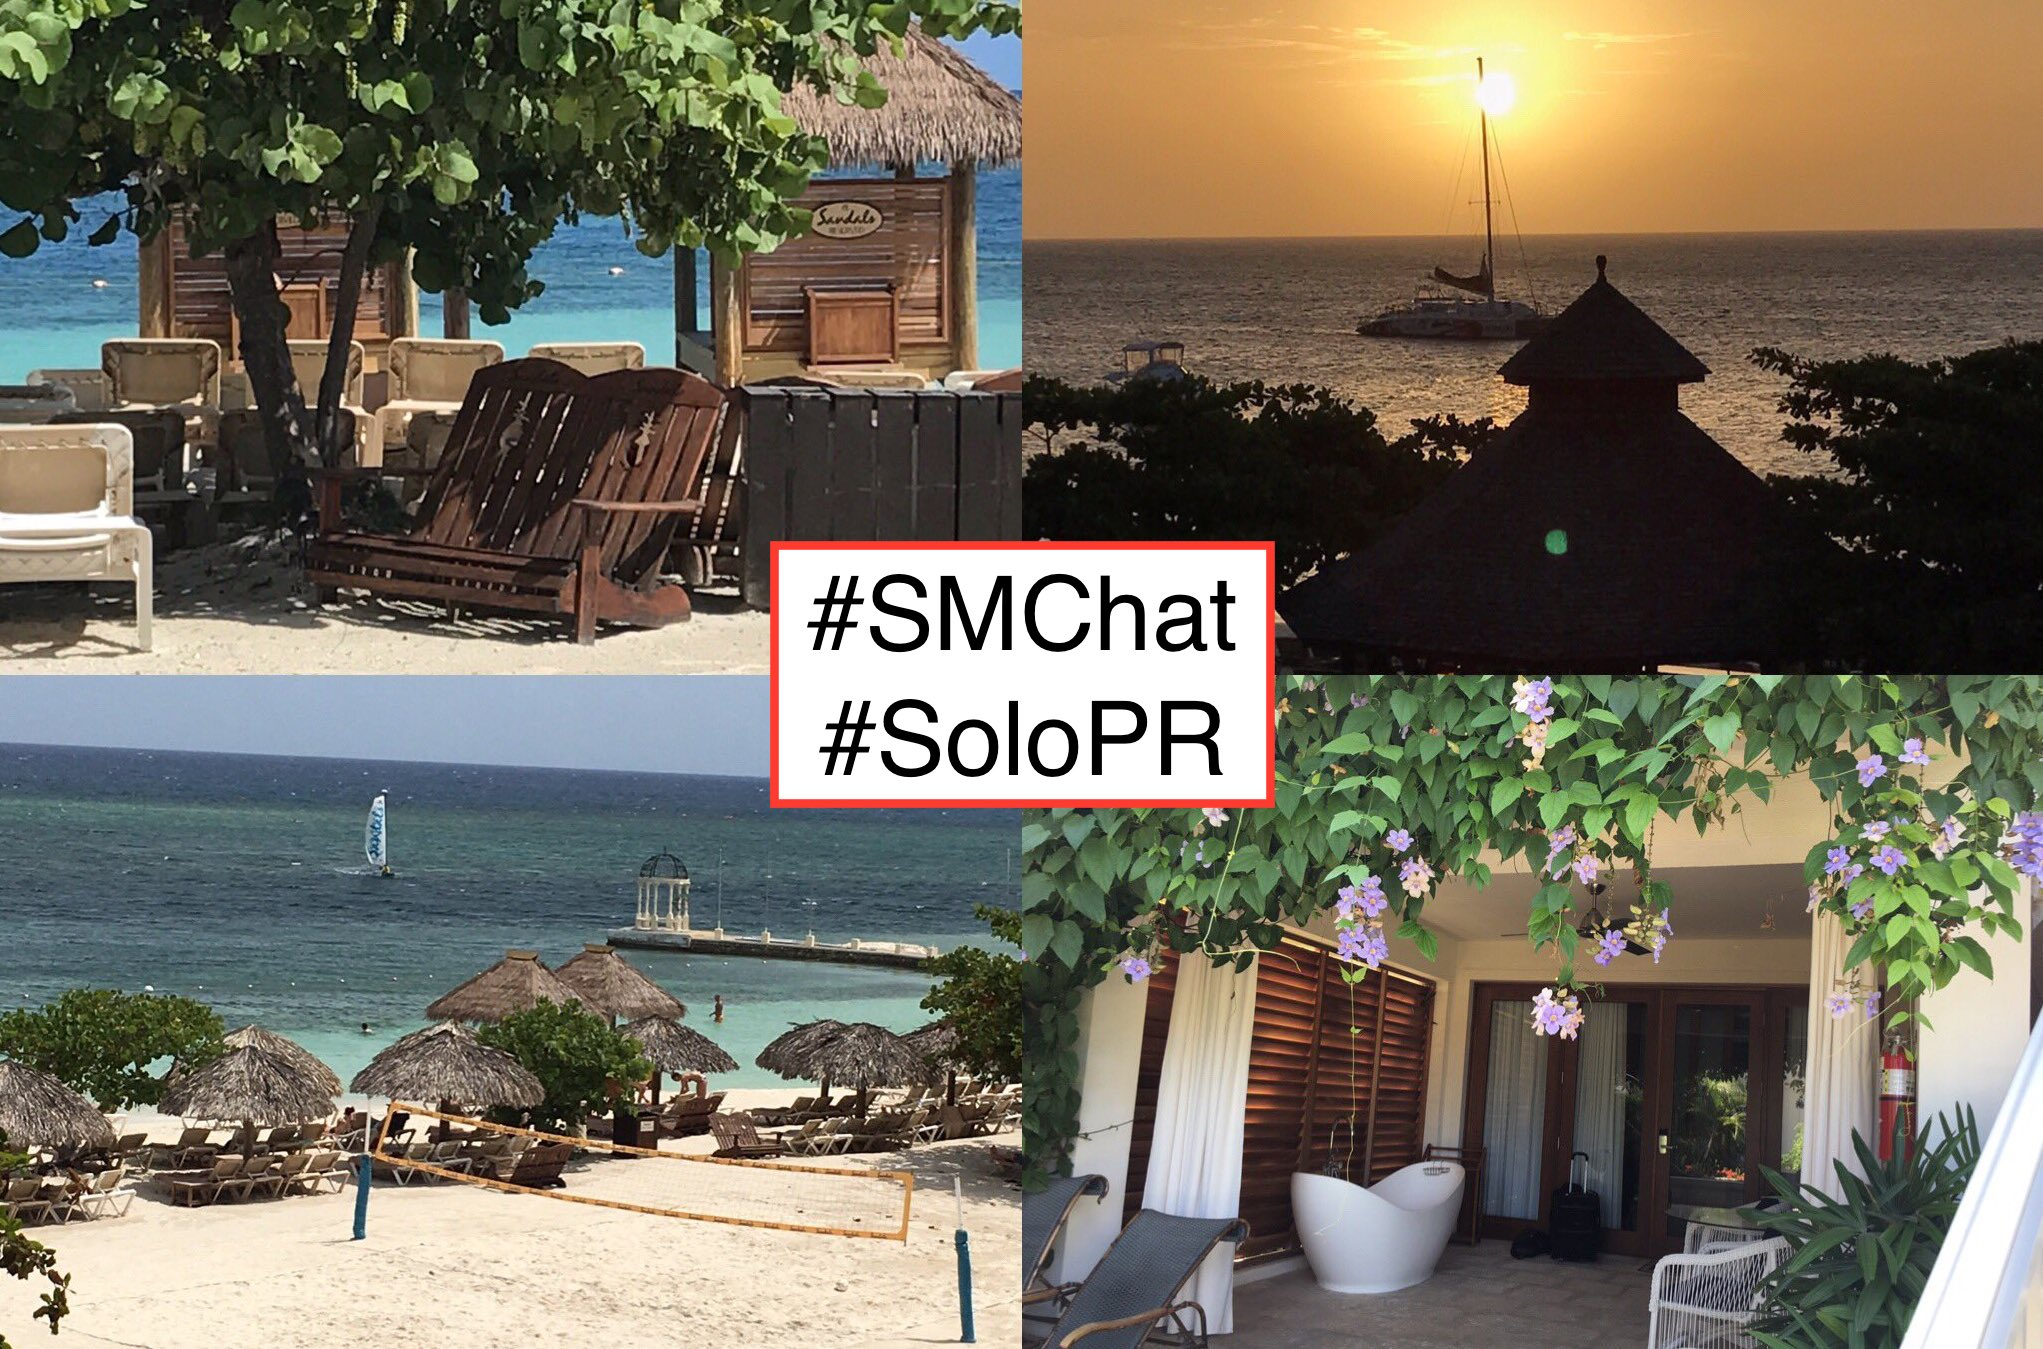 #smchat #solopr Q3 What boundaries do you set for work while away? https://t.co/GKhHKPcliy